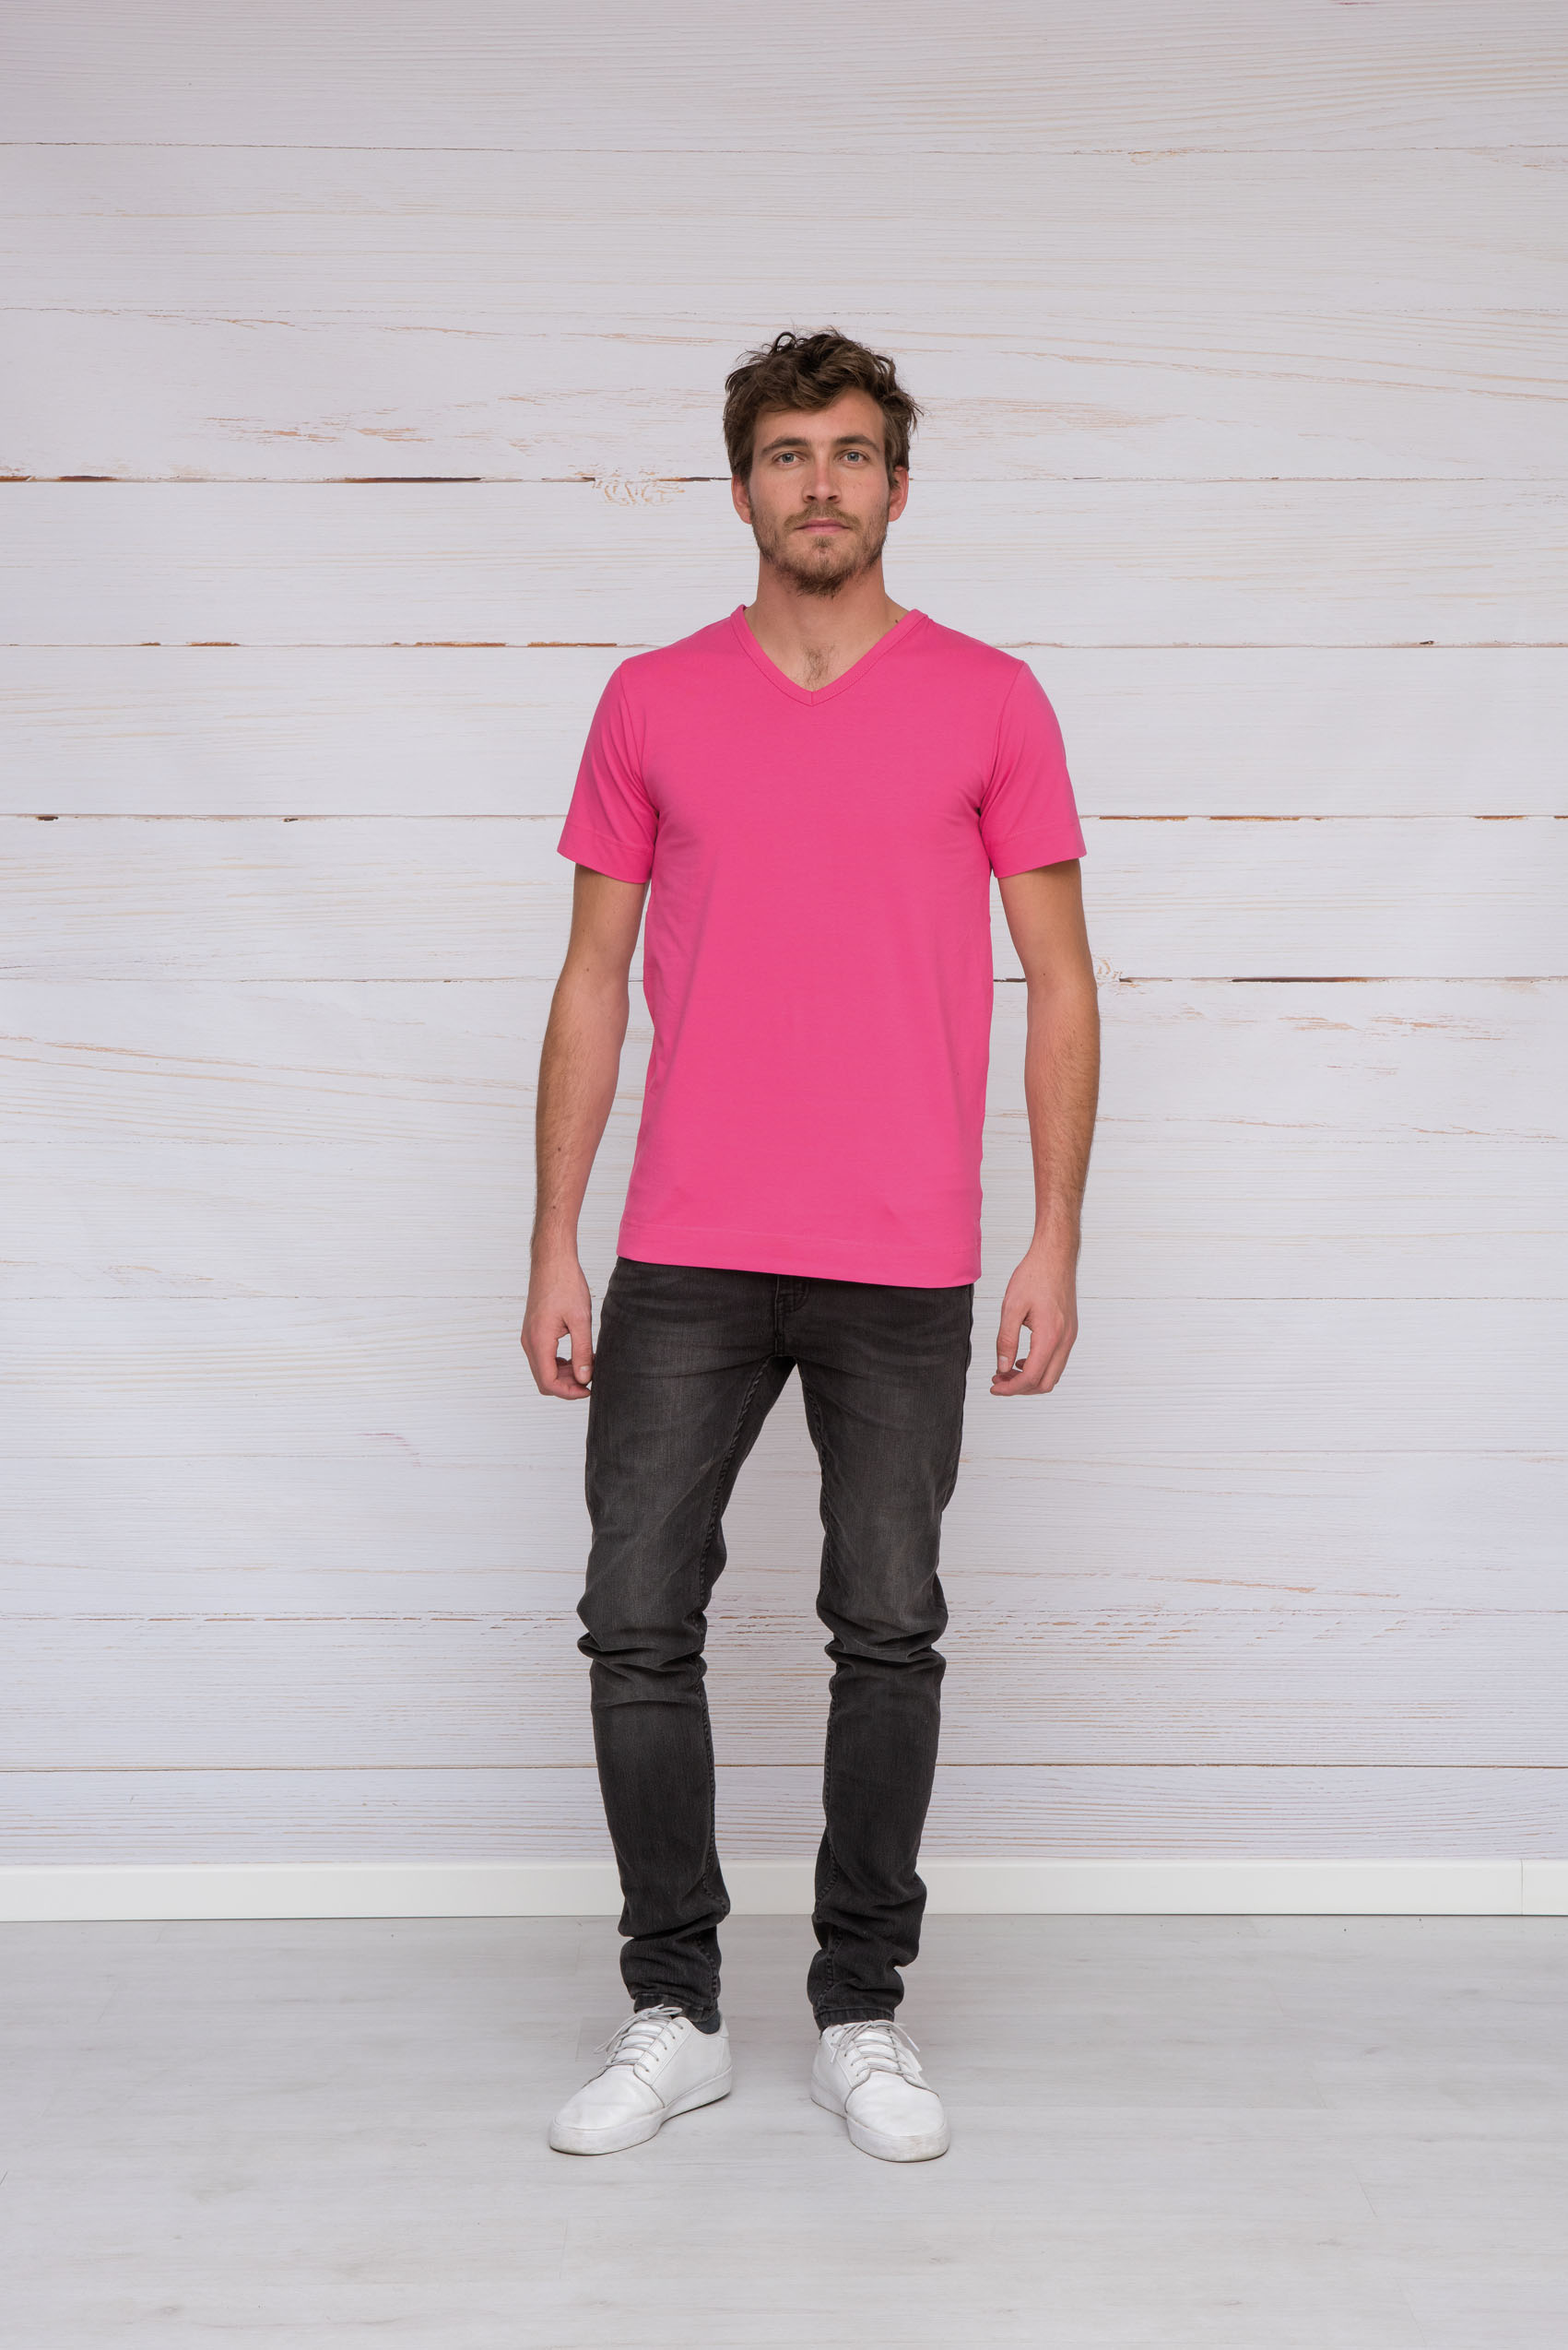 T-shirt V-neck cotton/elasthan for him